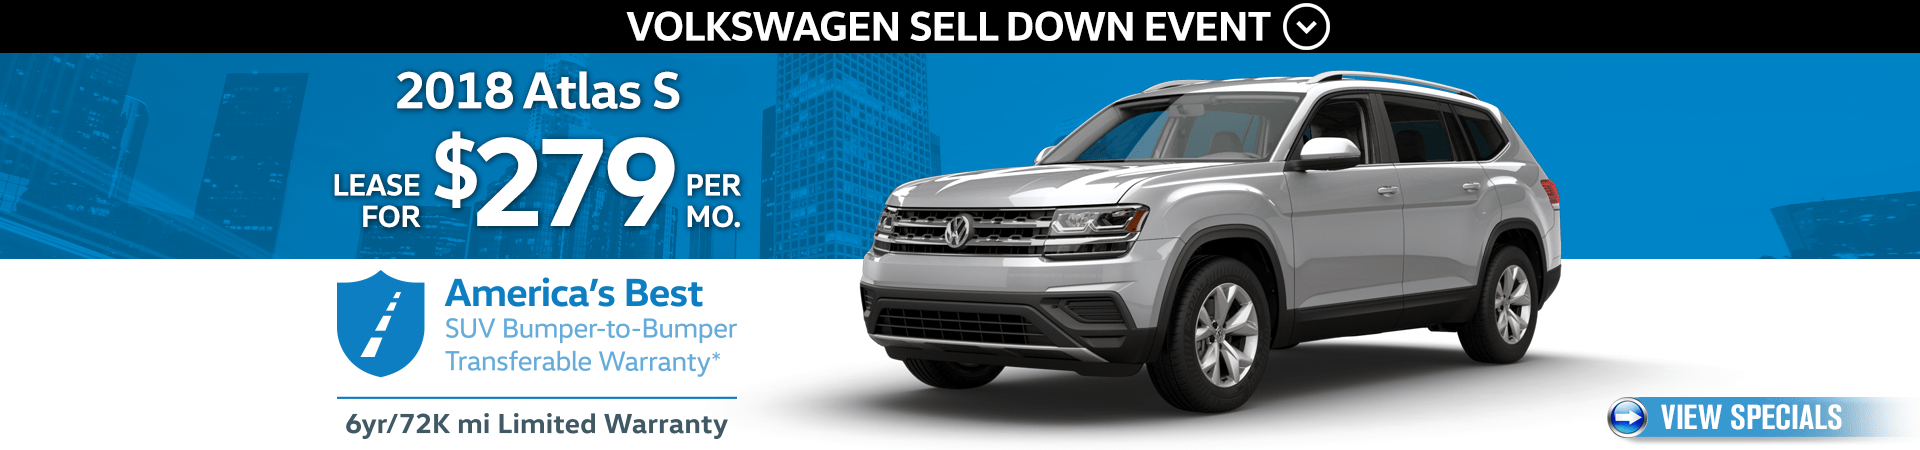 VW Sell Down Event - Atlas Offer